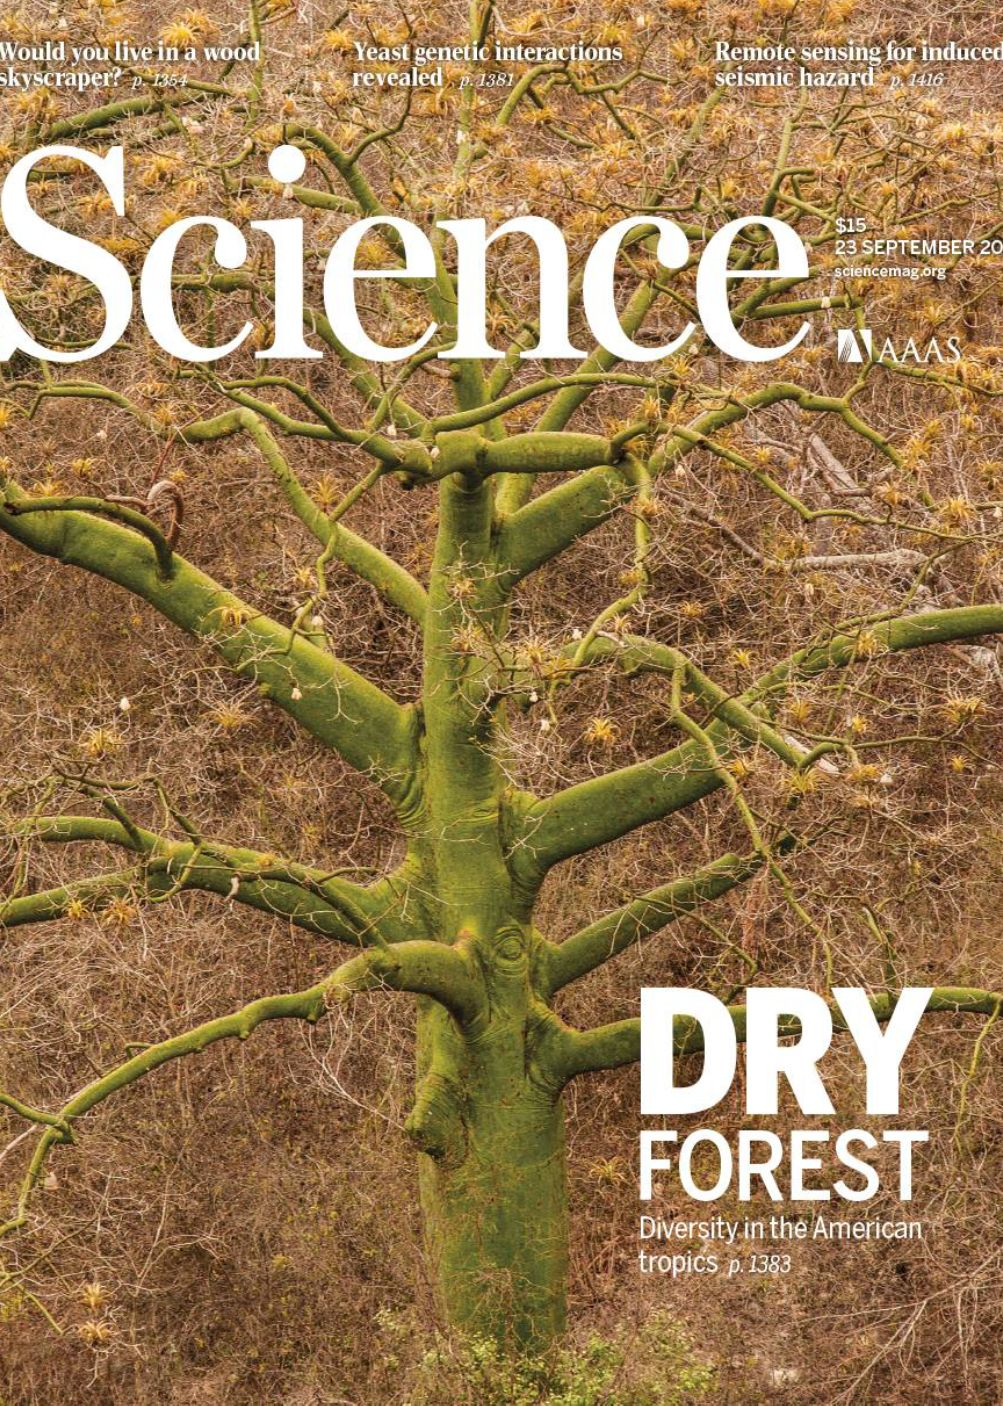 Tropical Dry Forest on the cover of Science, September 2016